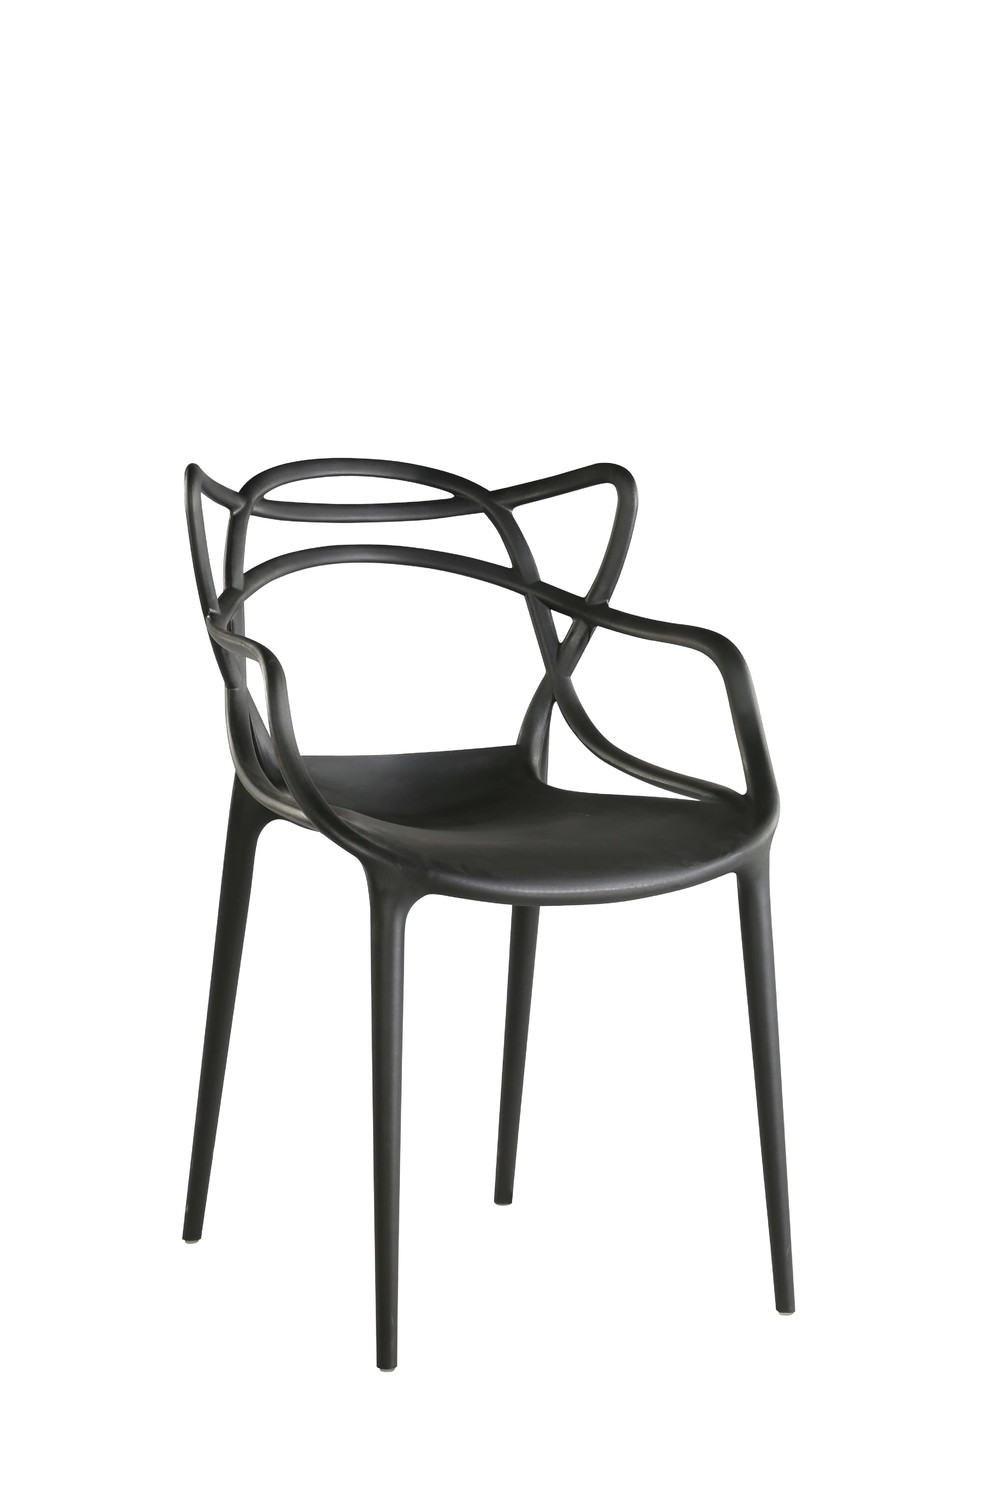 Modern simple plastic dining chair PP-601